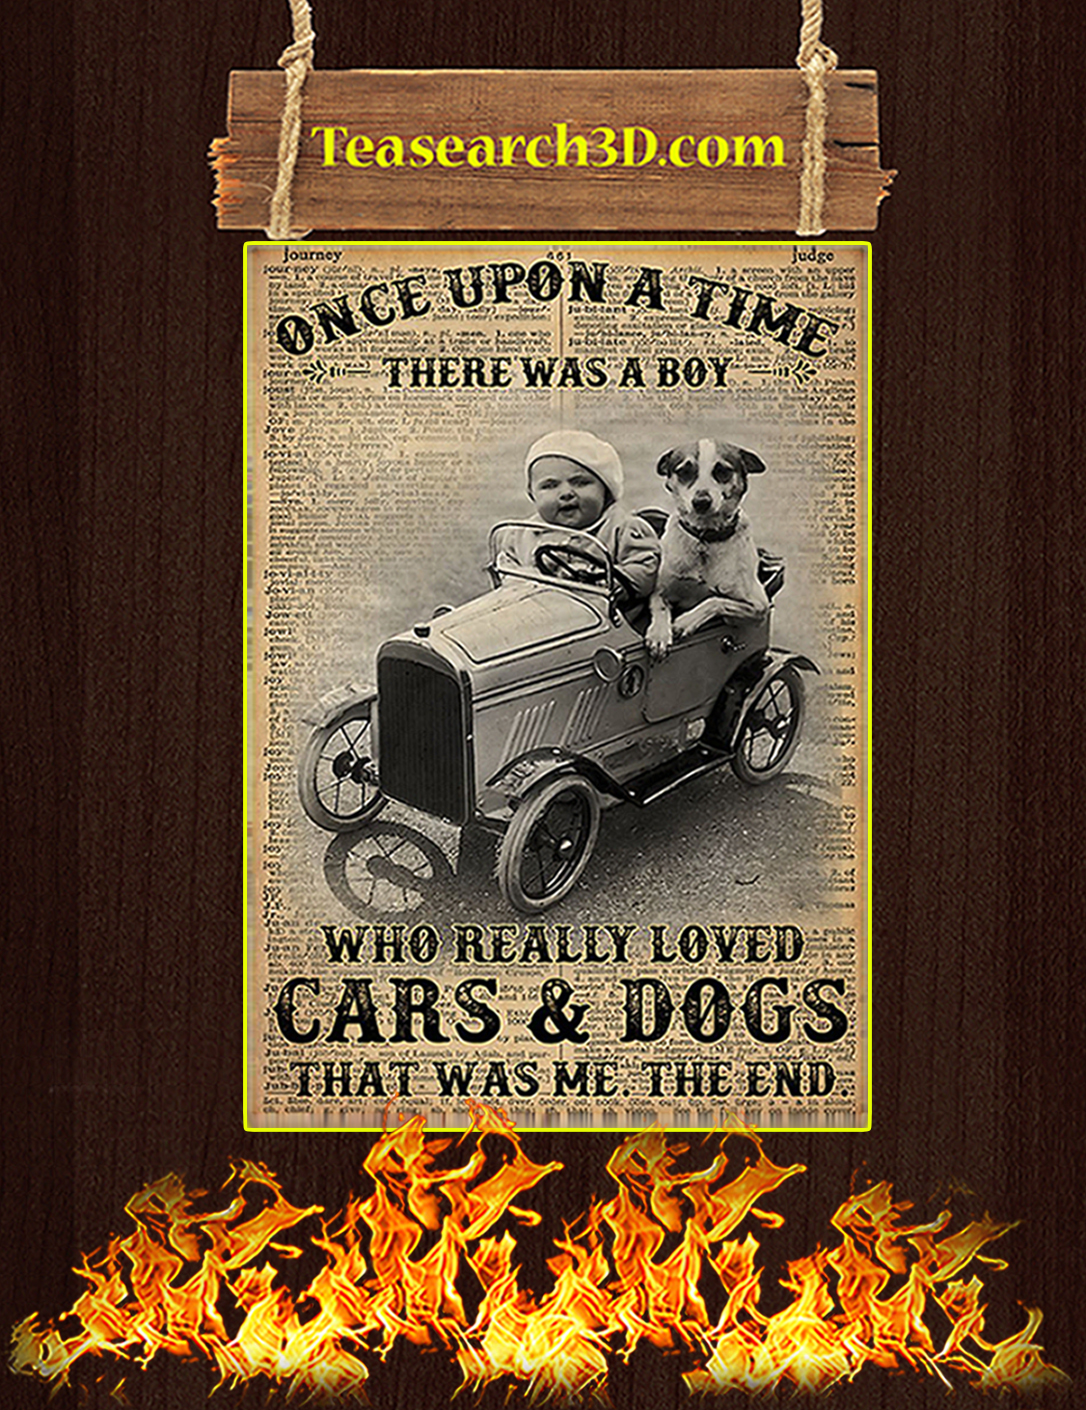 Once upon a time there was a boy who really loved cars and dogs poster A2Once upon a time there was a boy who really loved cars and dogs poster A2